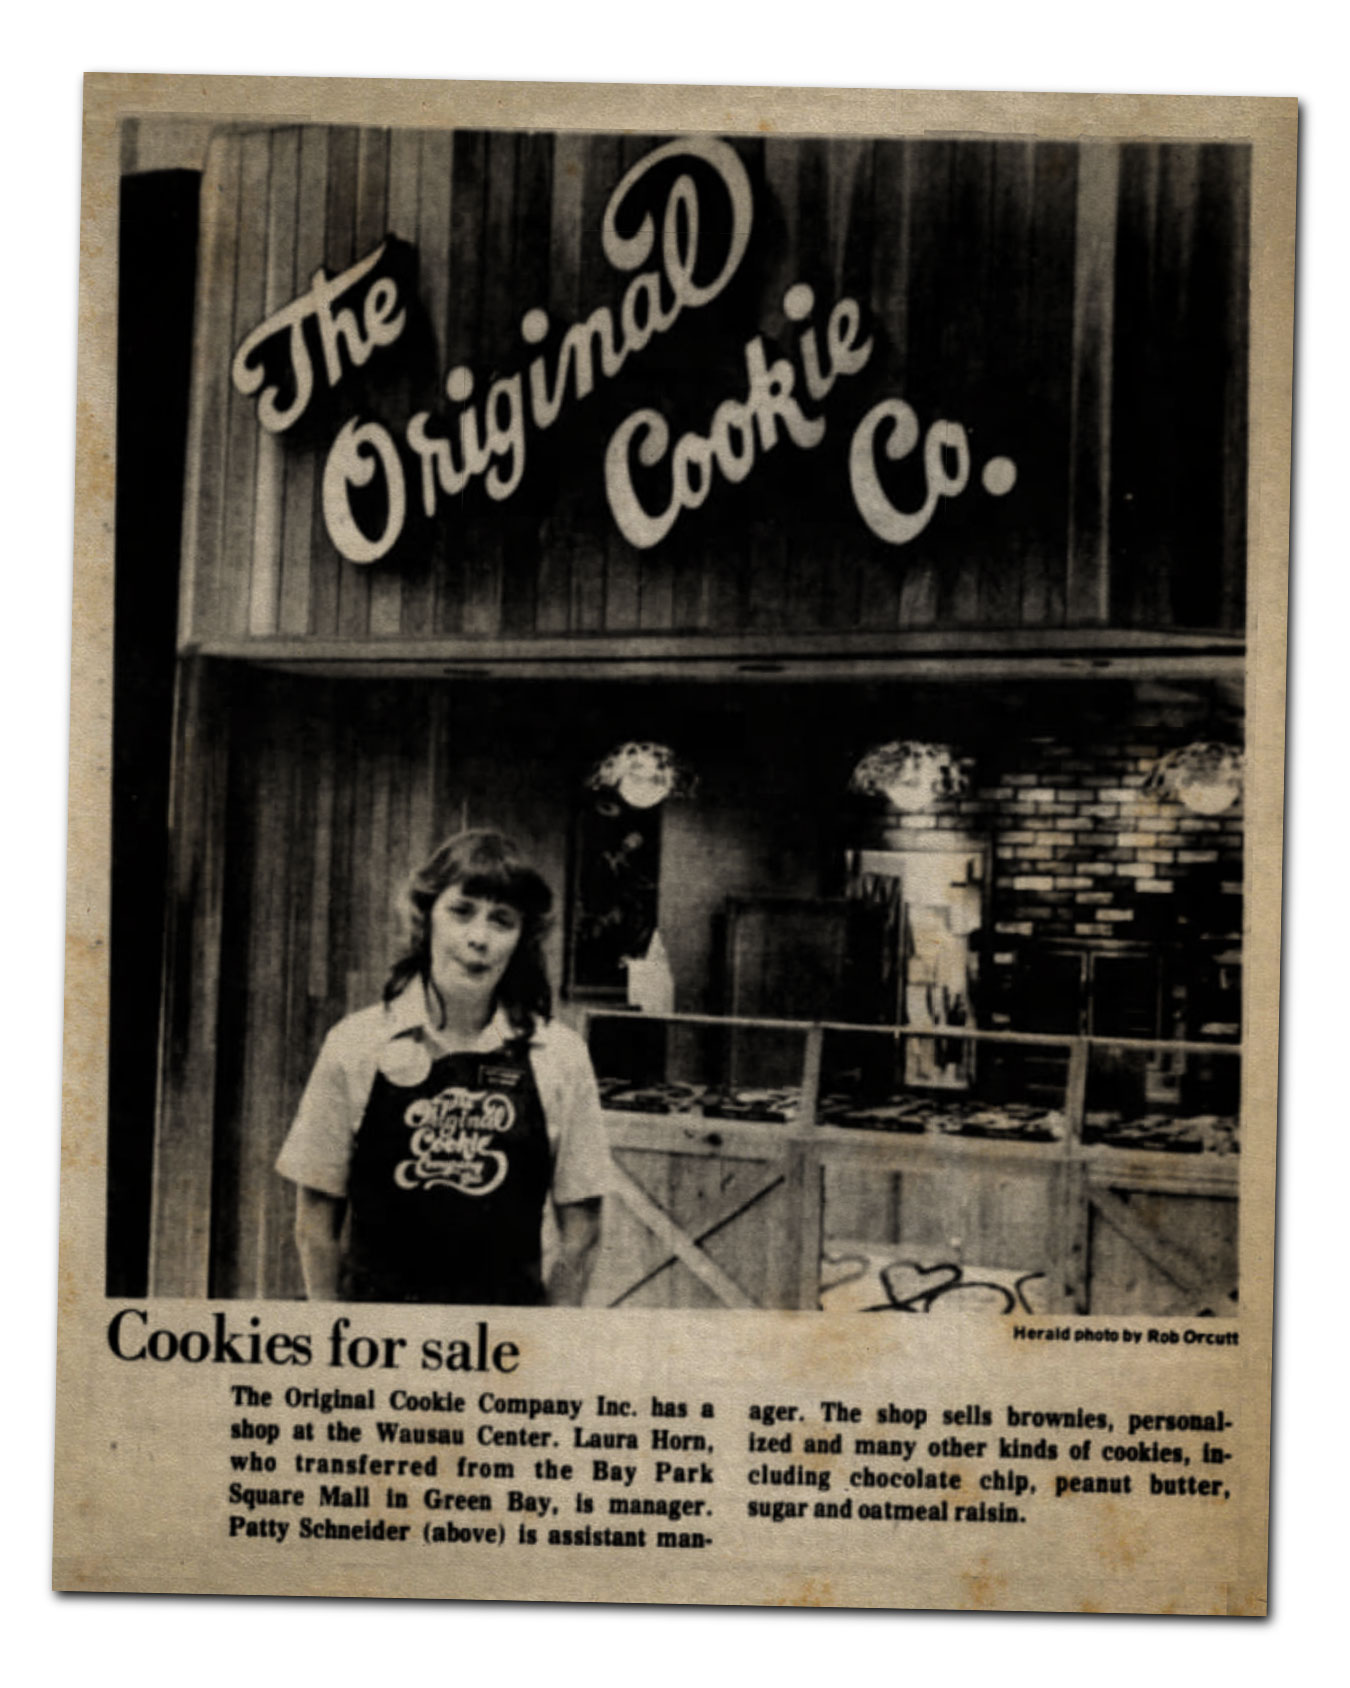 Cookies for sale at The Original Cookie Company